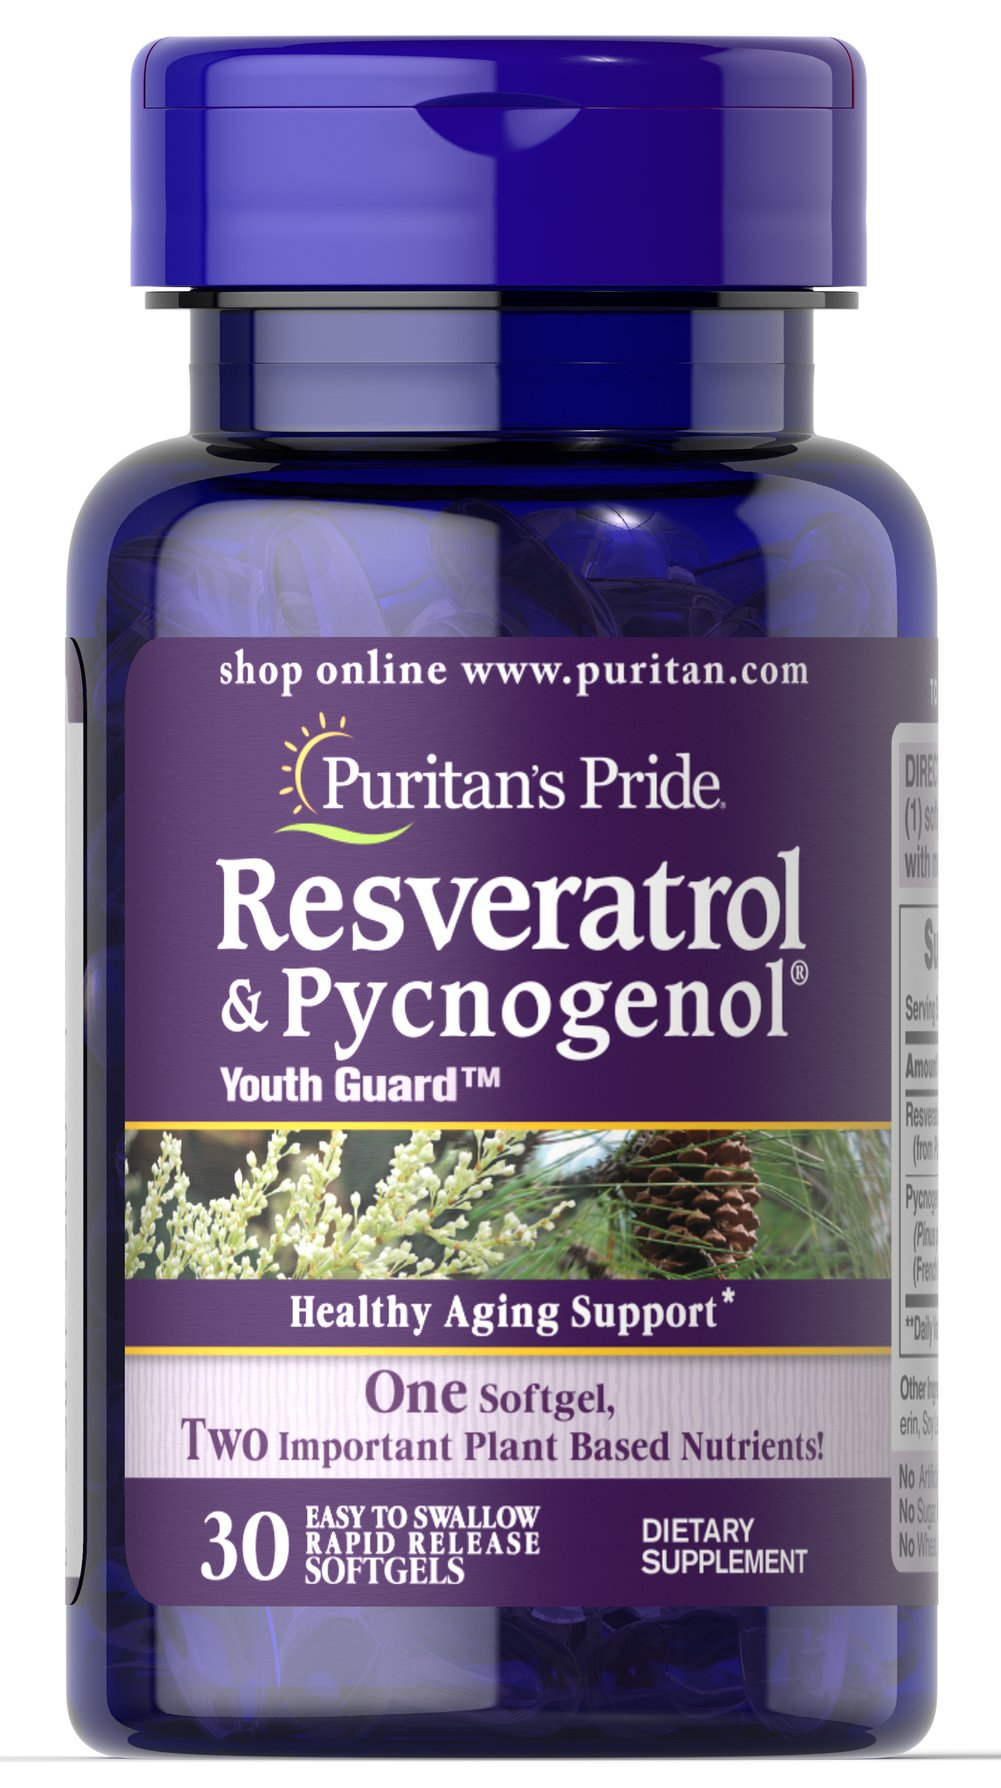 Resveratrol 100 mg & Pycnogenol® 30 mg <p>•    Healthy aging support**<br />•    Supports heart health by supporting blood flow and vascular function**<br />•    Has antioxidant properties**<br />•    Helps fight free radicals**<br /><br />Resveratrol can help fight the oxidative stress caused by cell damaging free radicals.** Resveratrol is a g